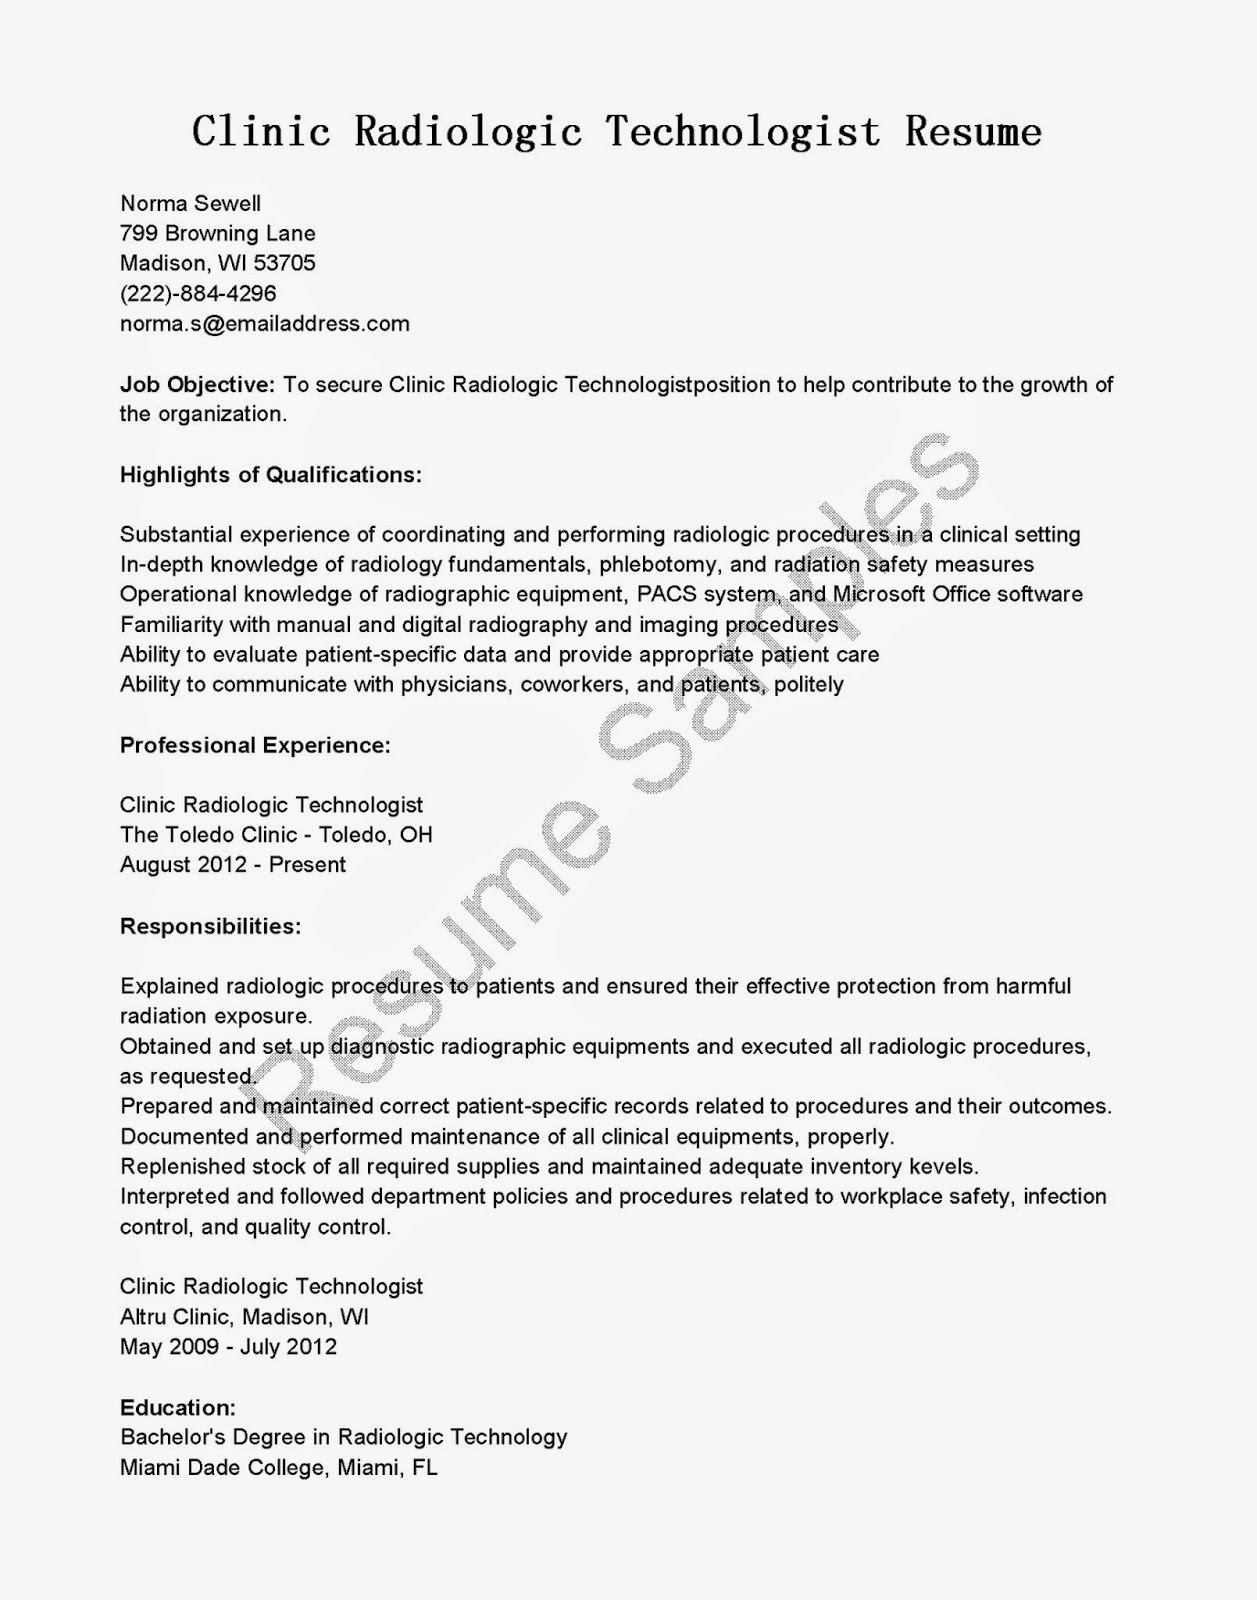 radiologic technologist resume examples line 17qq sample for fhmfgkfqqwy customer service Resume Sample Resume For Radiologic Technologist